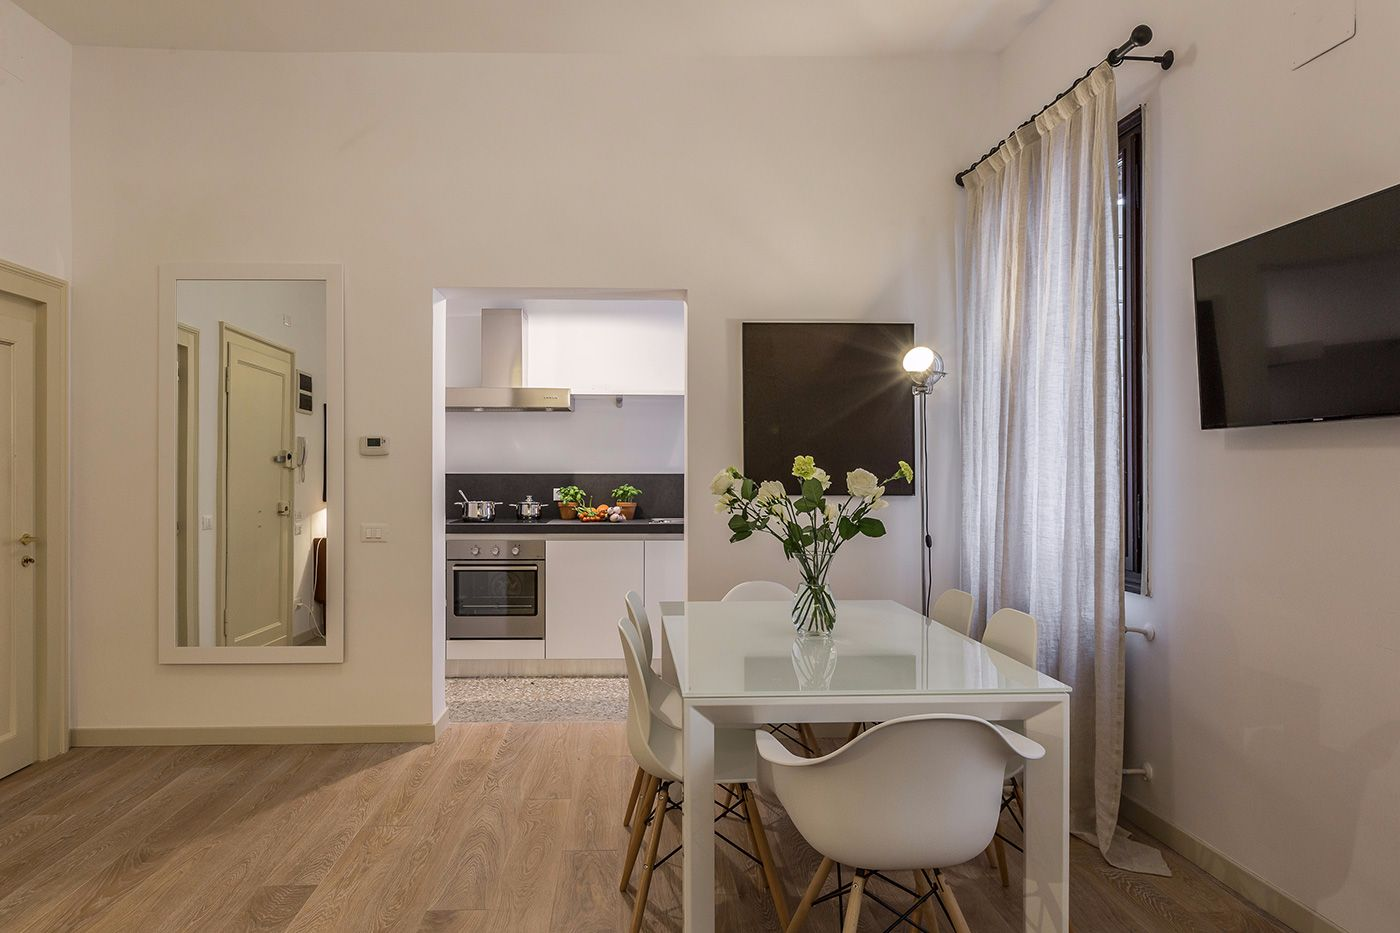 the studio is connected with the larger Tosca apartment located on the same floor